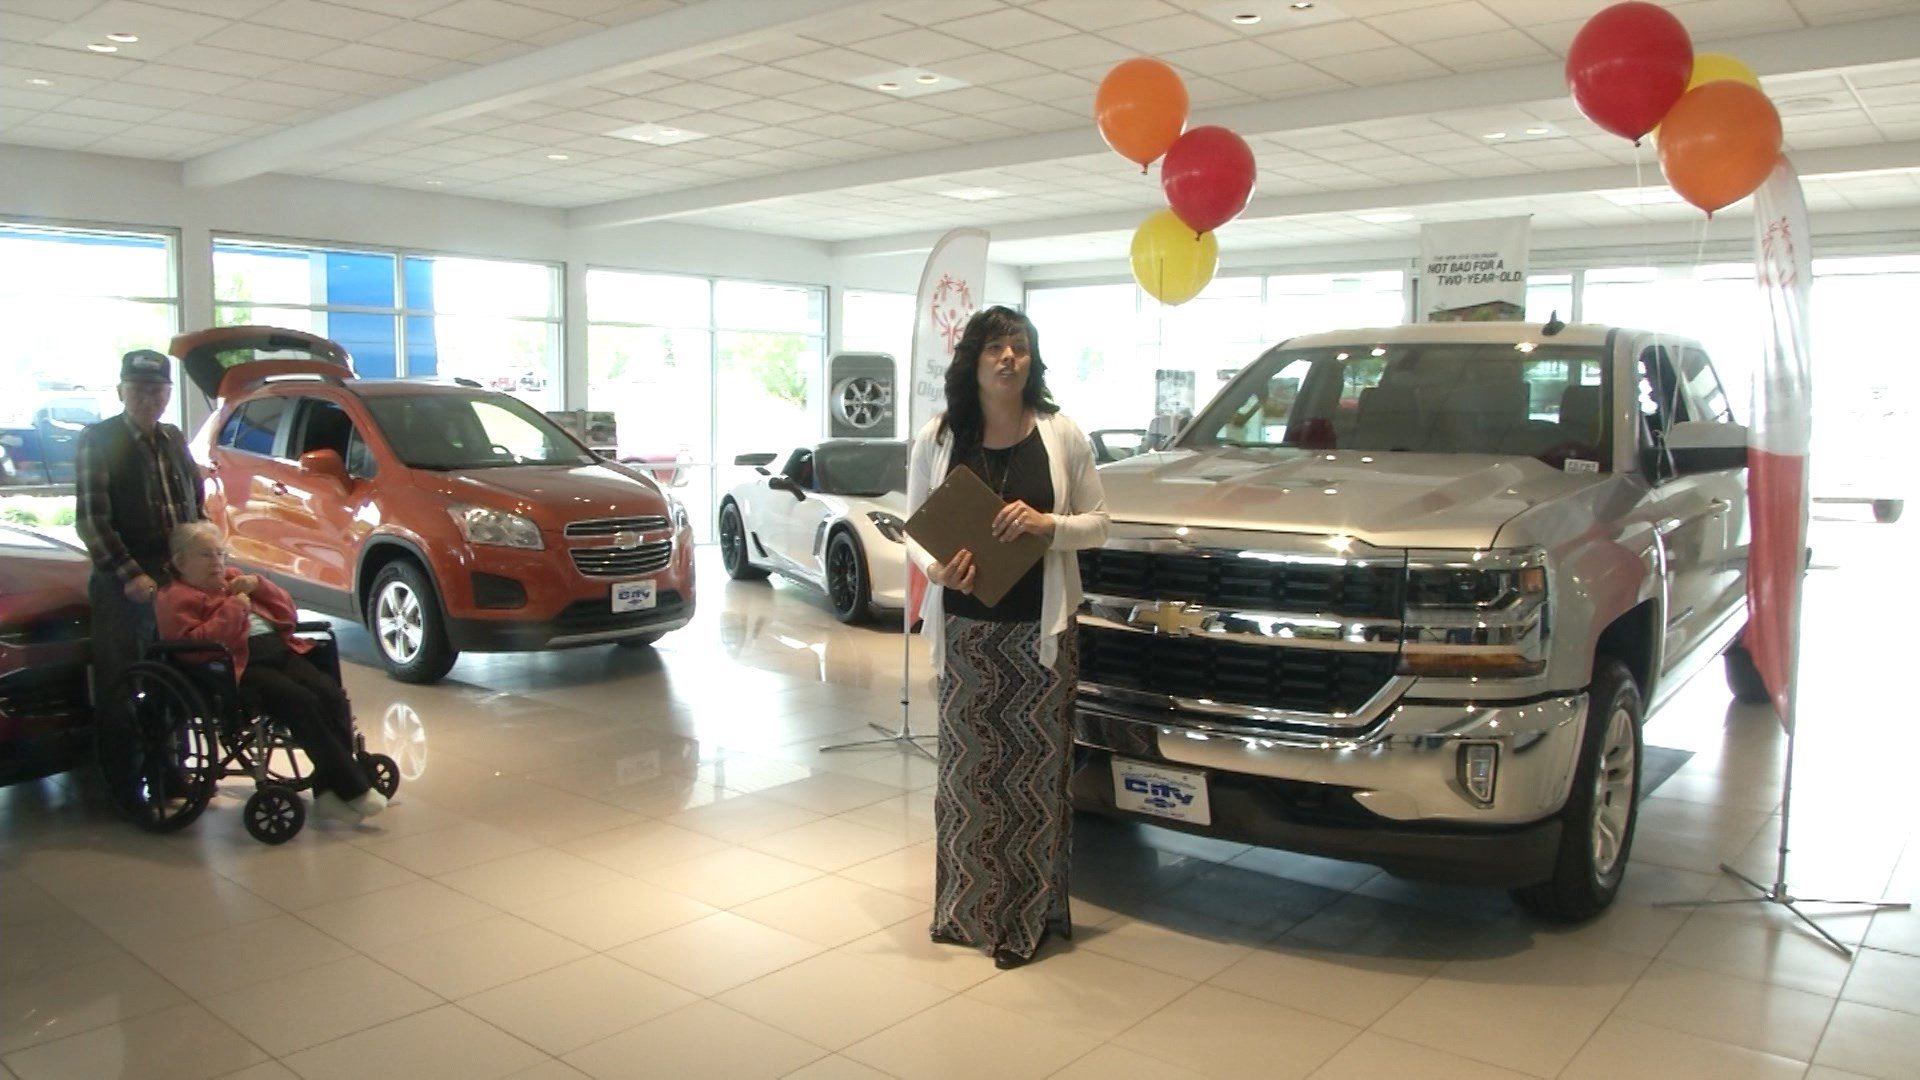 Special Olympics Truck Raffle Prize Awarded In Great Falls